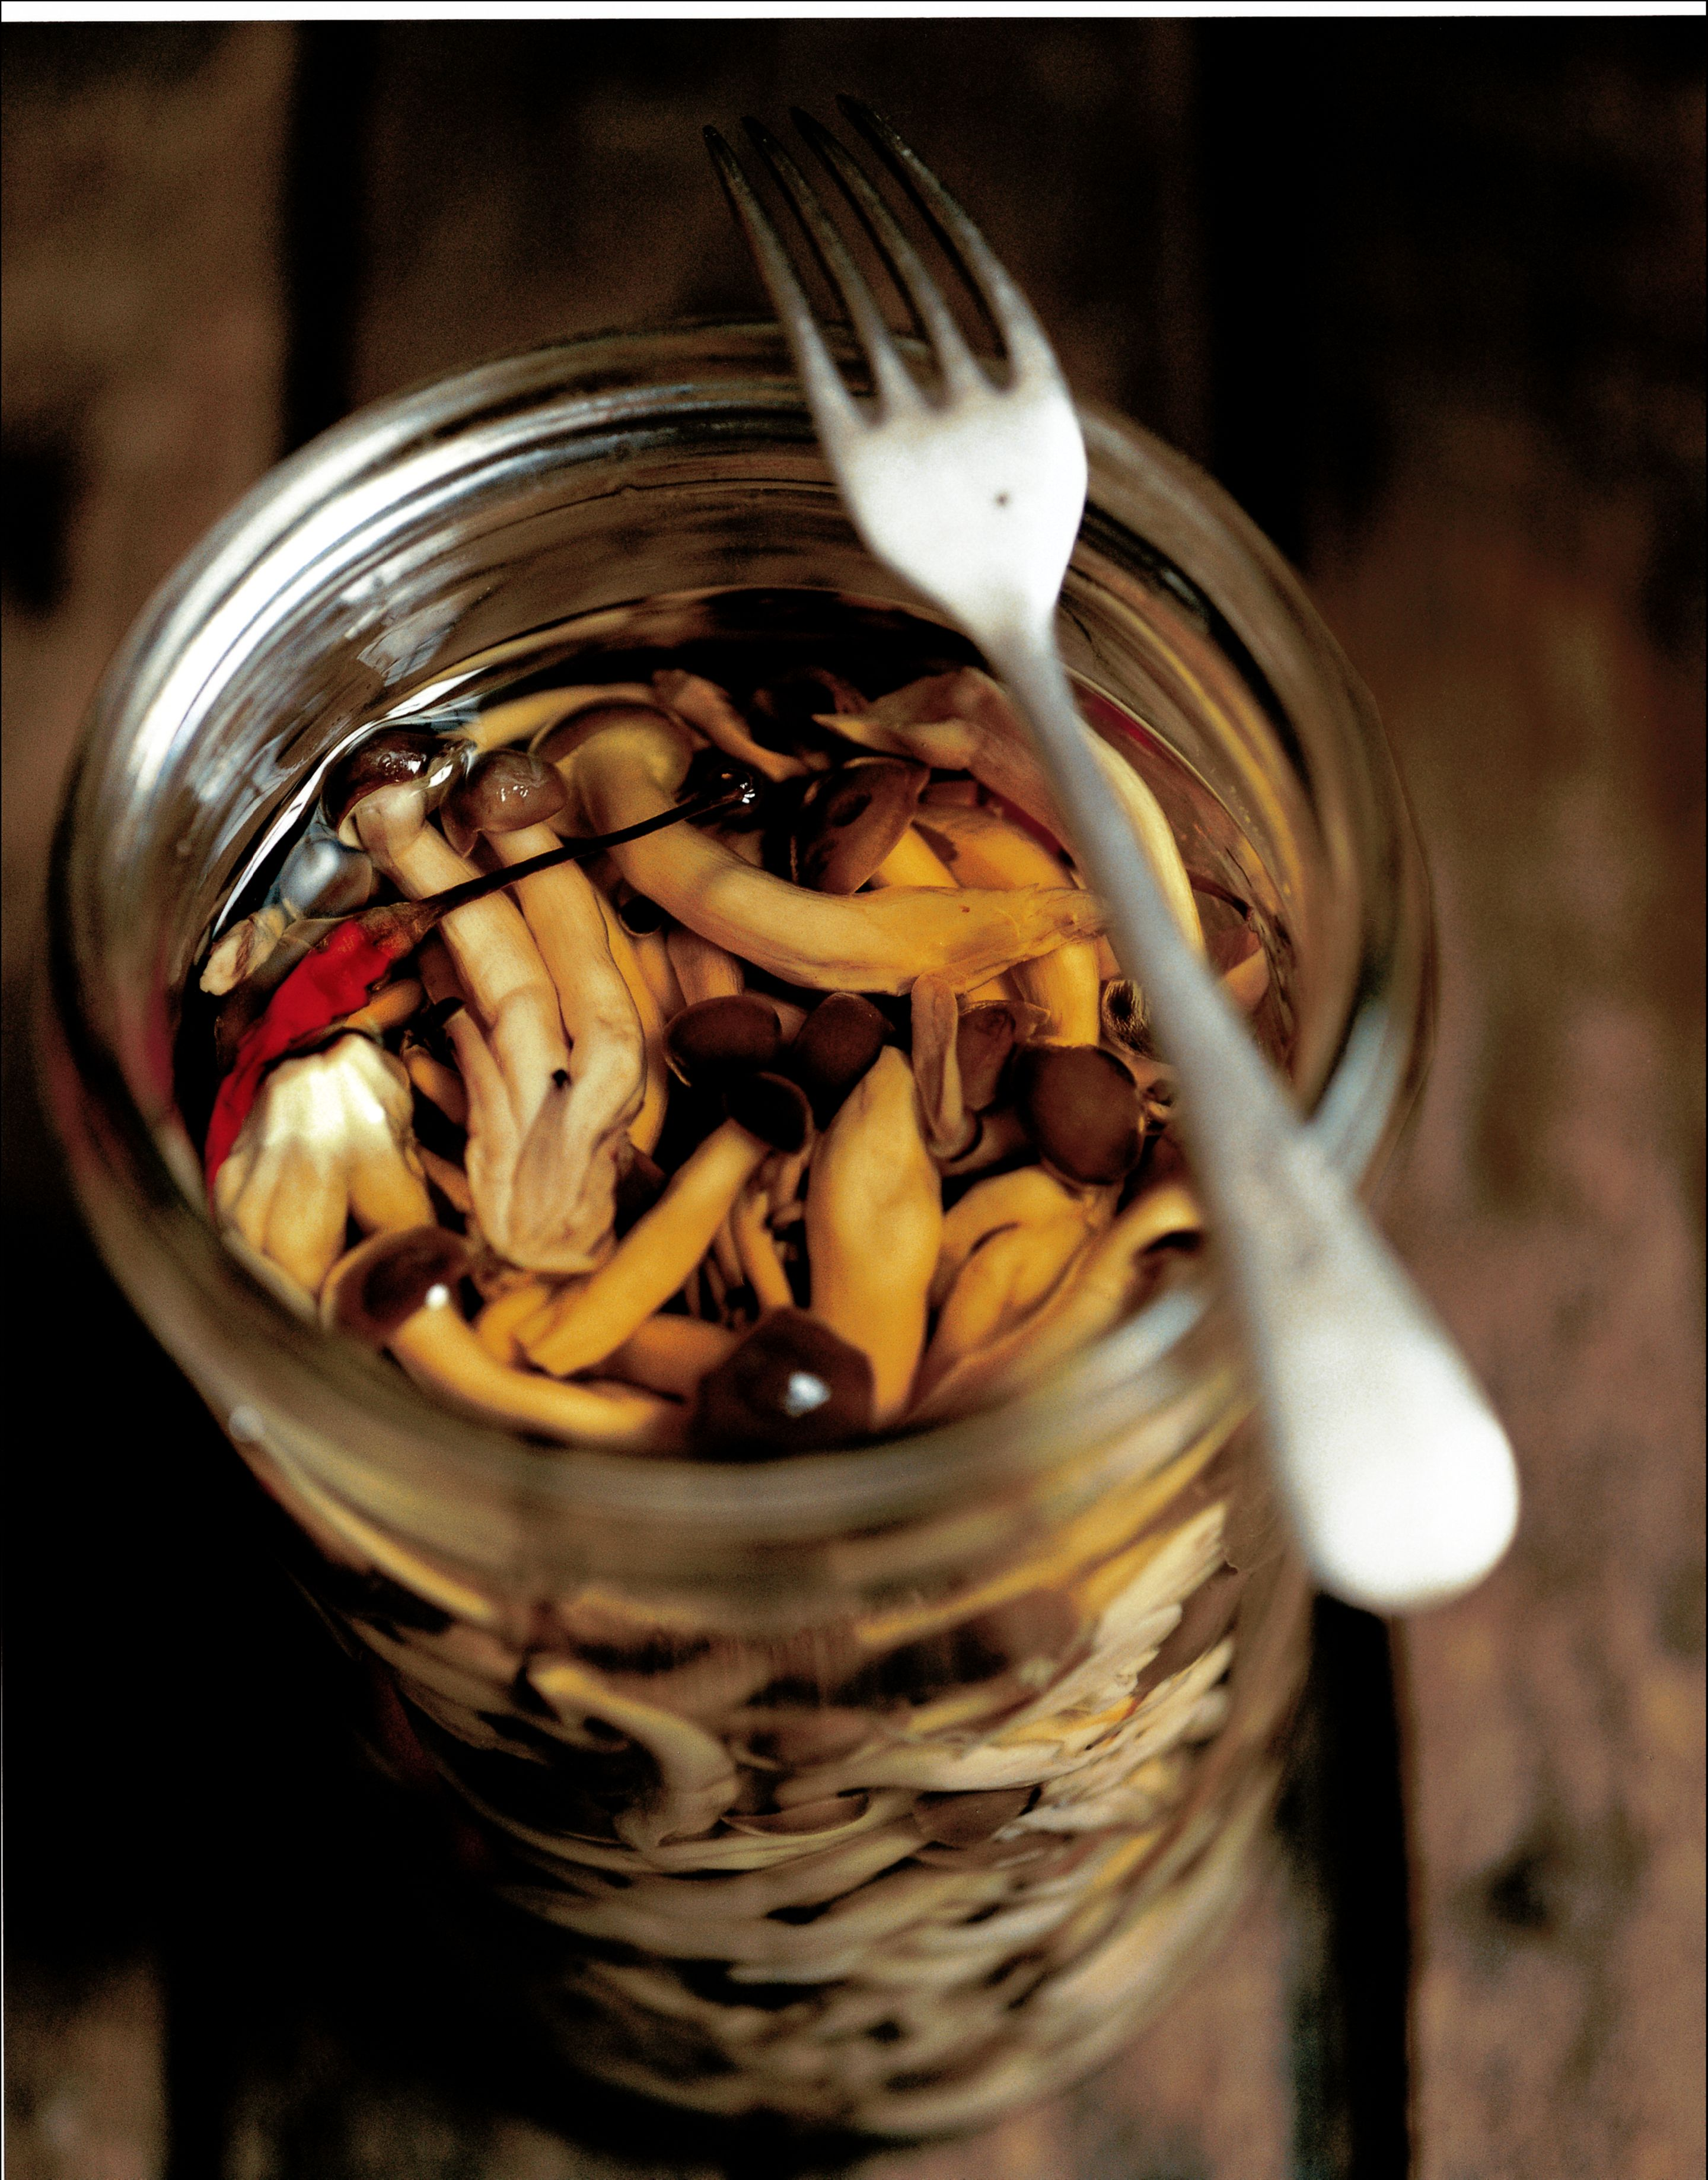 Pickled mushrooms in oil